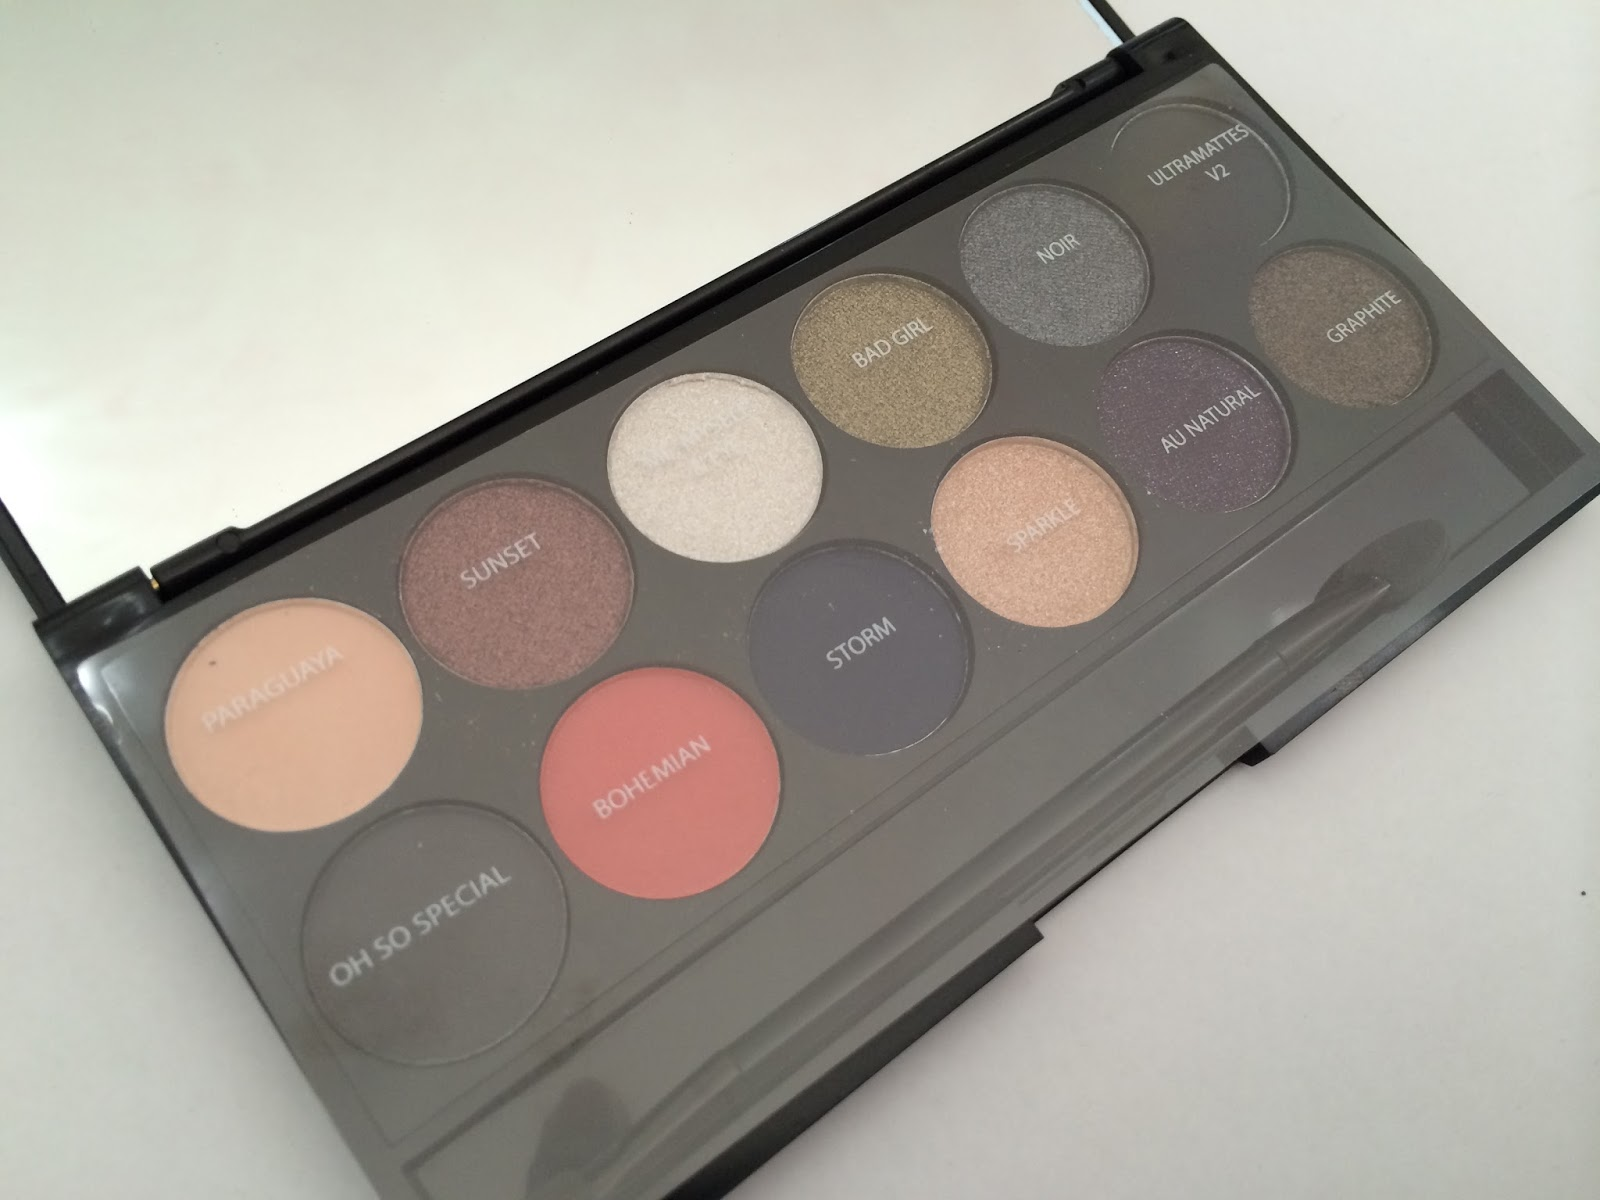 Sleek Showstoppers Palette Superdrug Celebrating i-Divine Limited Edition Eyeshadow Palette